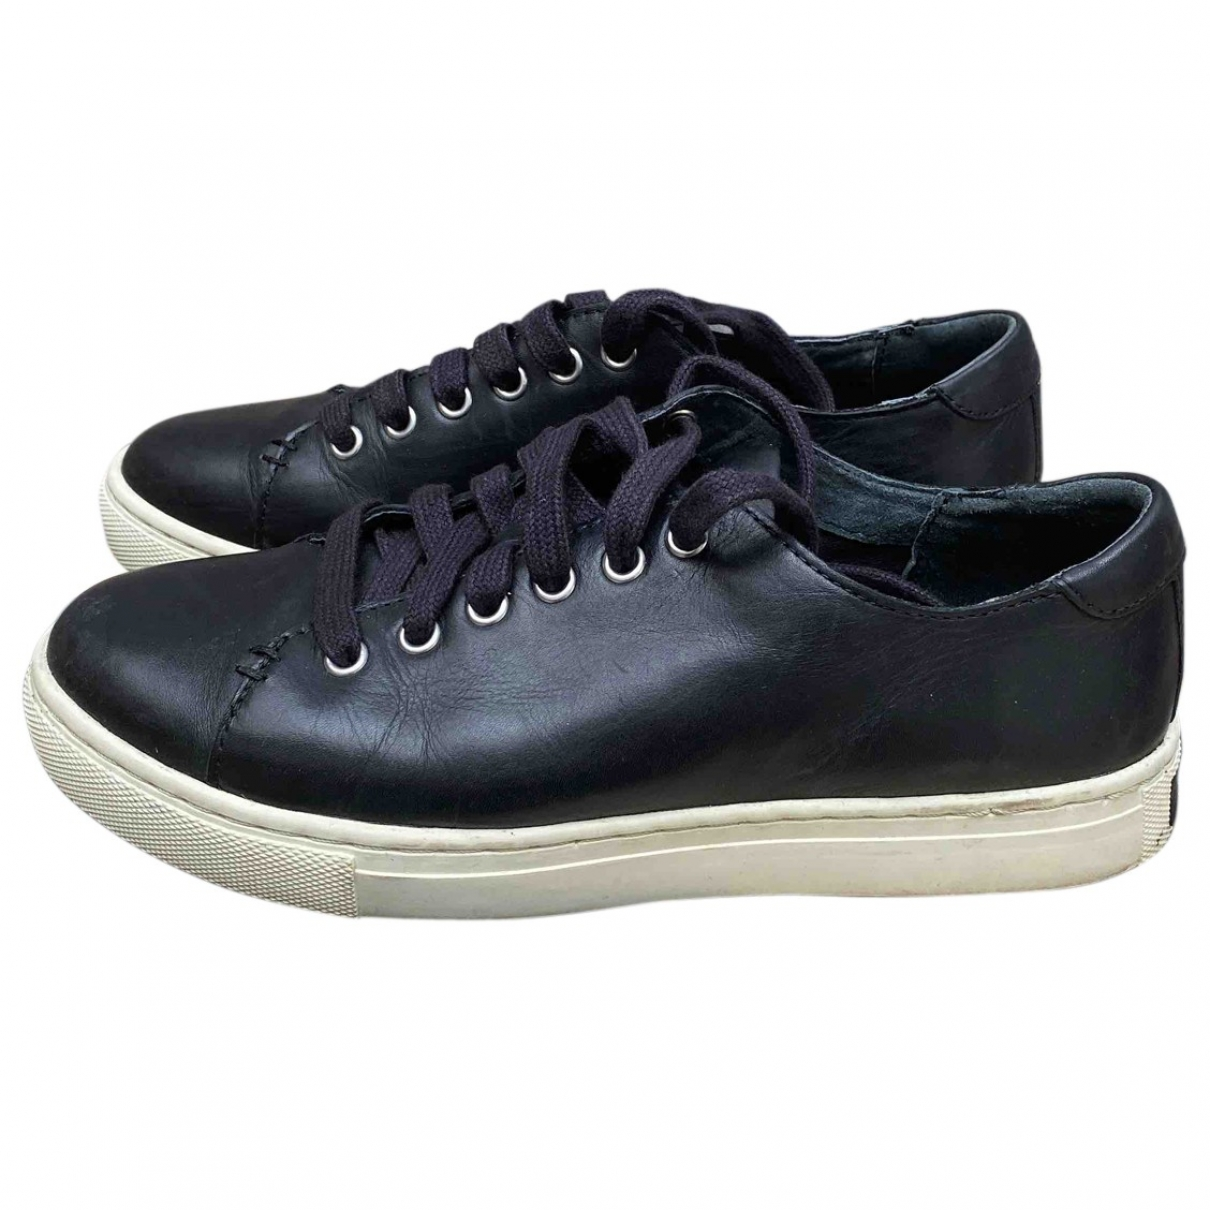 Lauren Ralph Lauren \N Black Leather Trainers for Women 36 EU